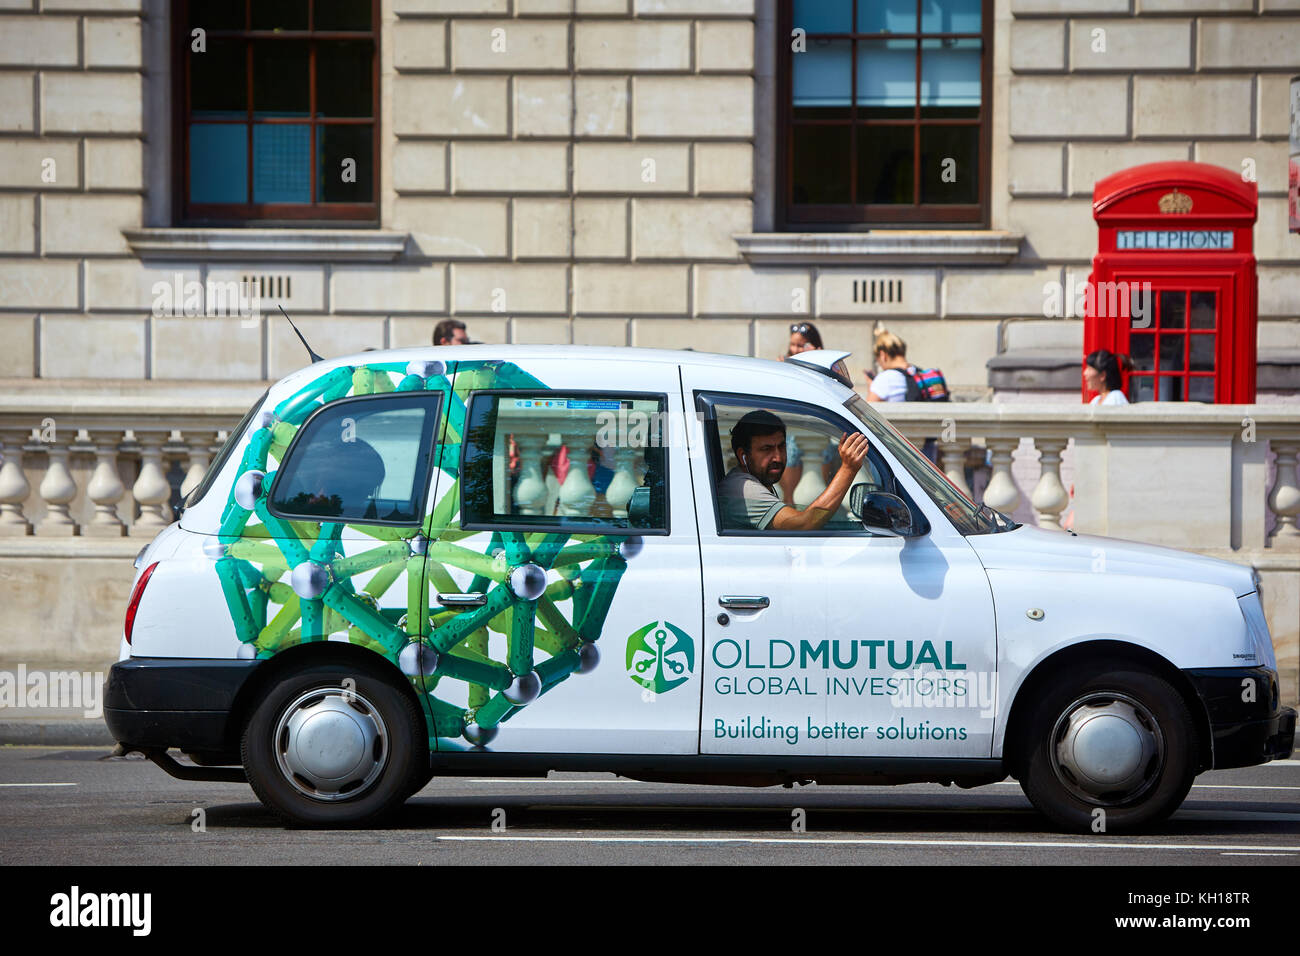 A London Hackney Carriage advertising Old Mutual - Stock Image